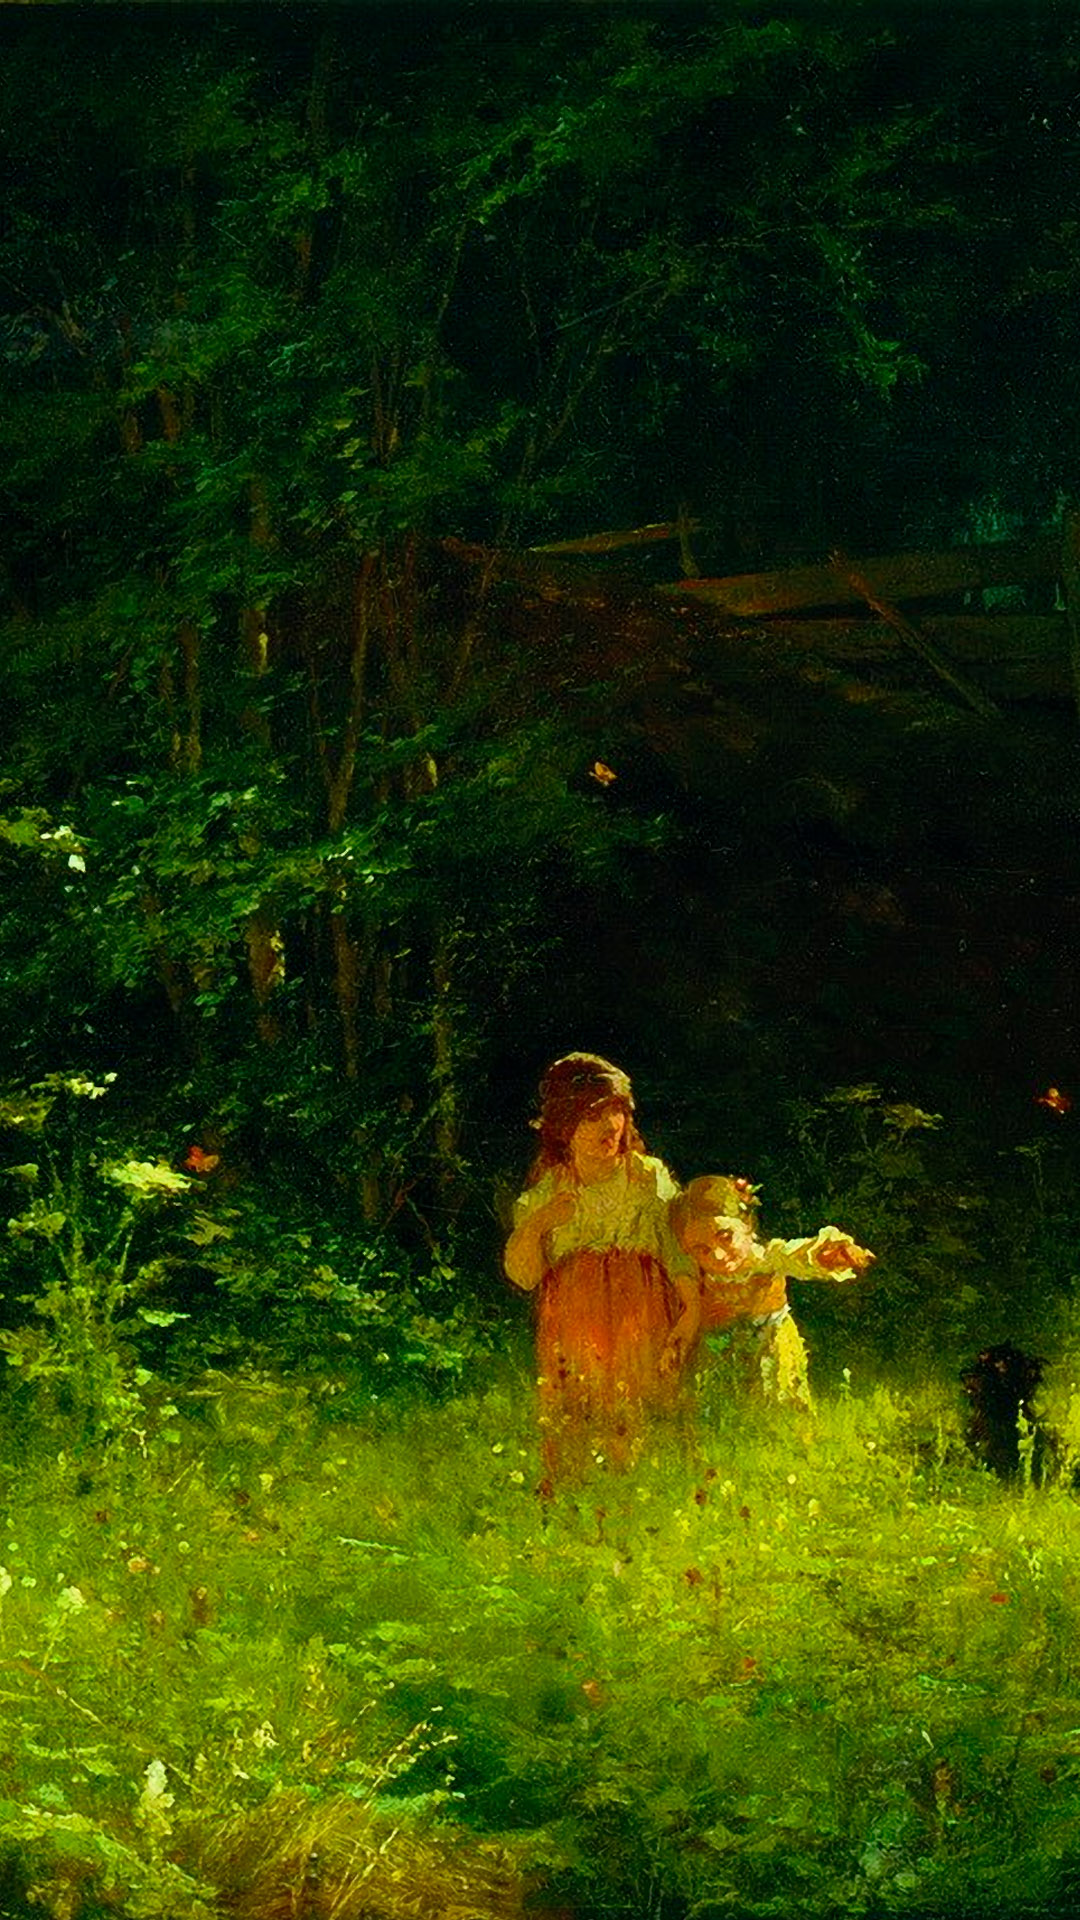 Ivan Kramskoy - Children in the woods 1080x1920